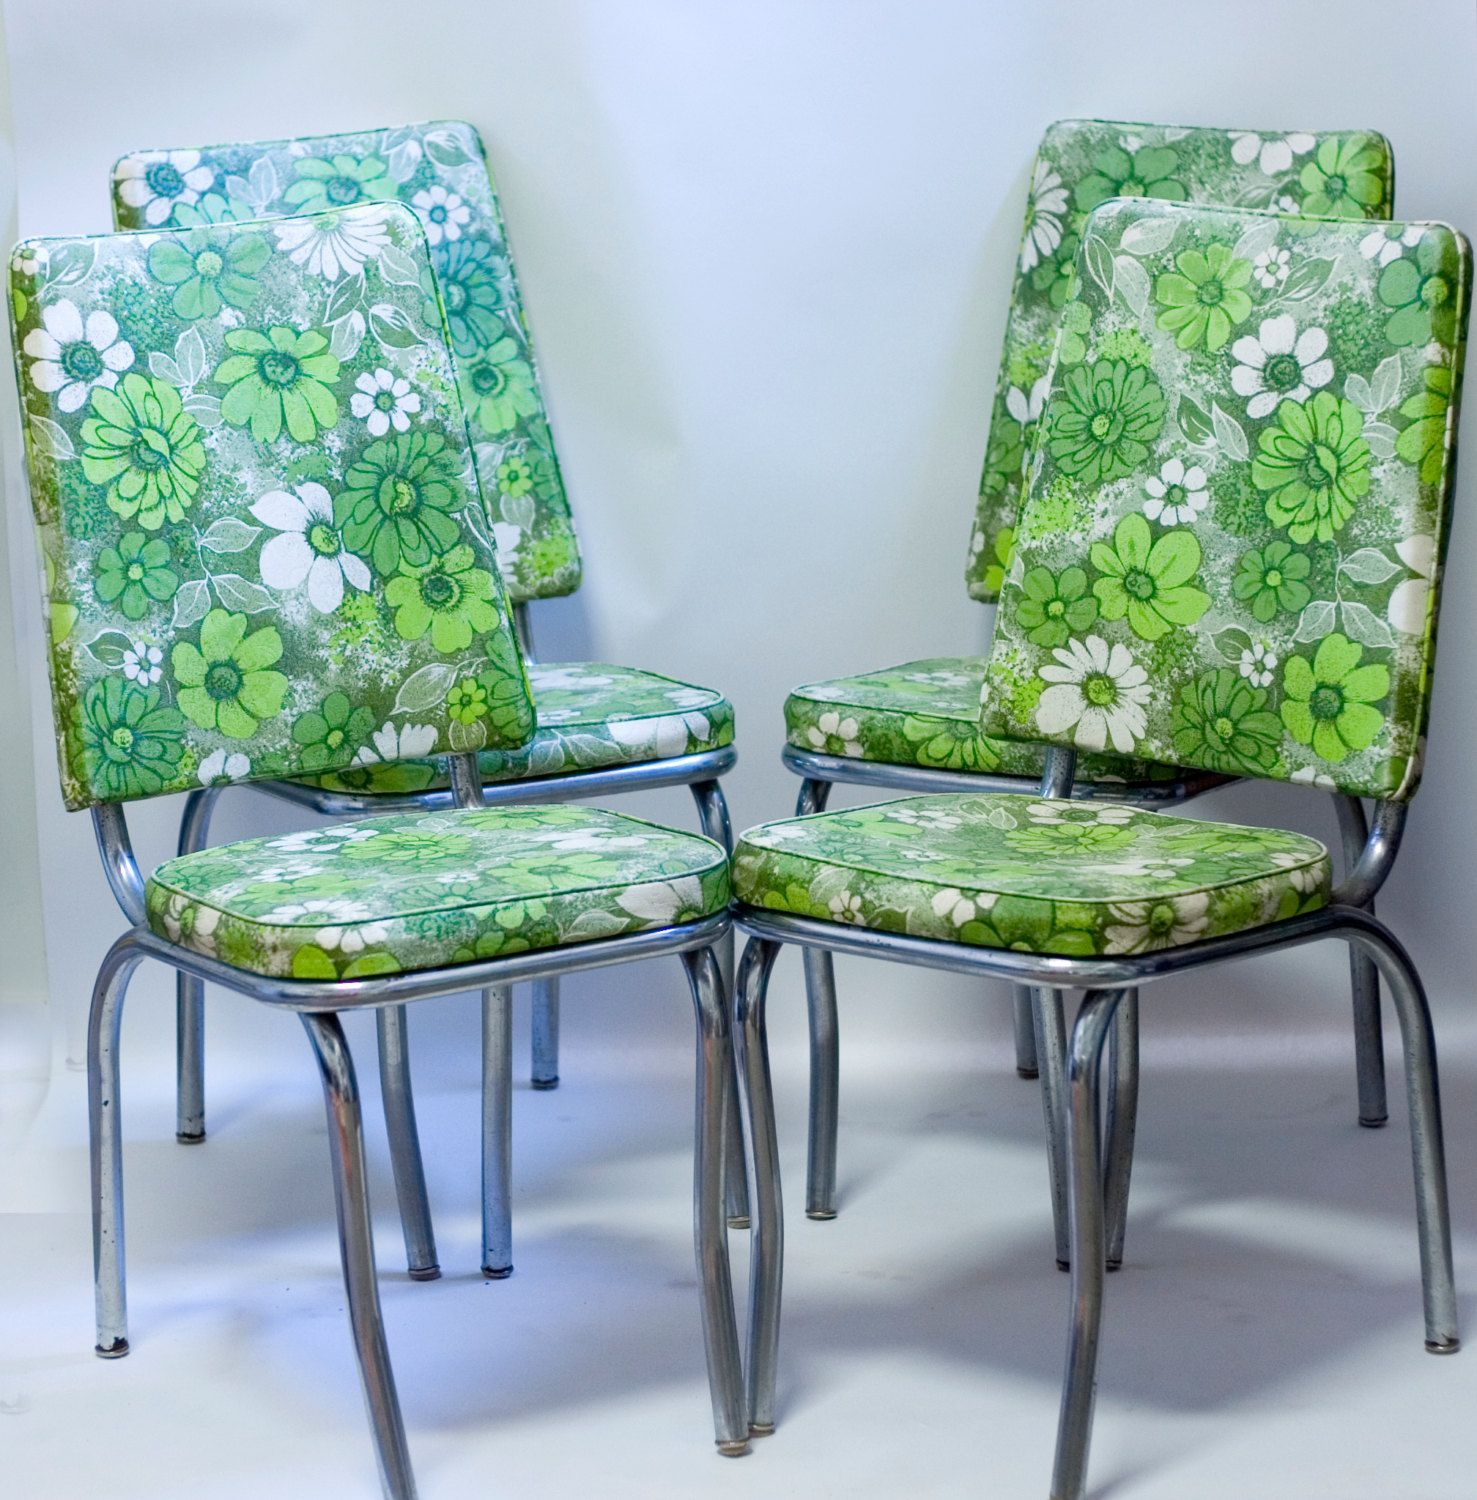 Mid Century Chrome Kitchen Chairs 1950s Green Floral Vinyl 300 00 Via Etsy Kitchen Chairs Mid Century Chair Vinyl Chairs